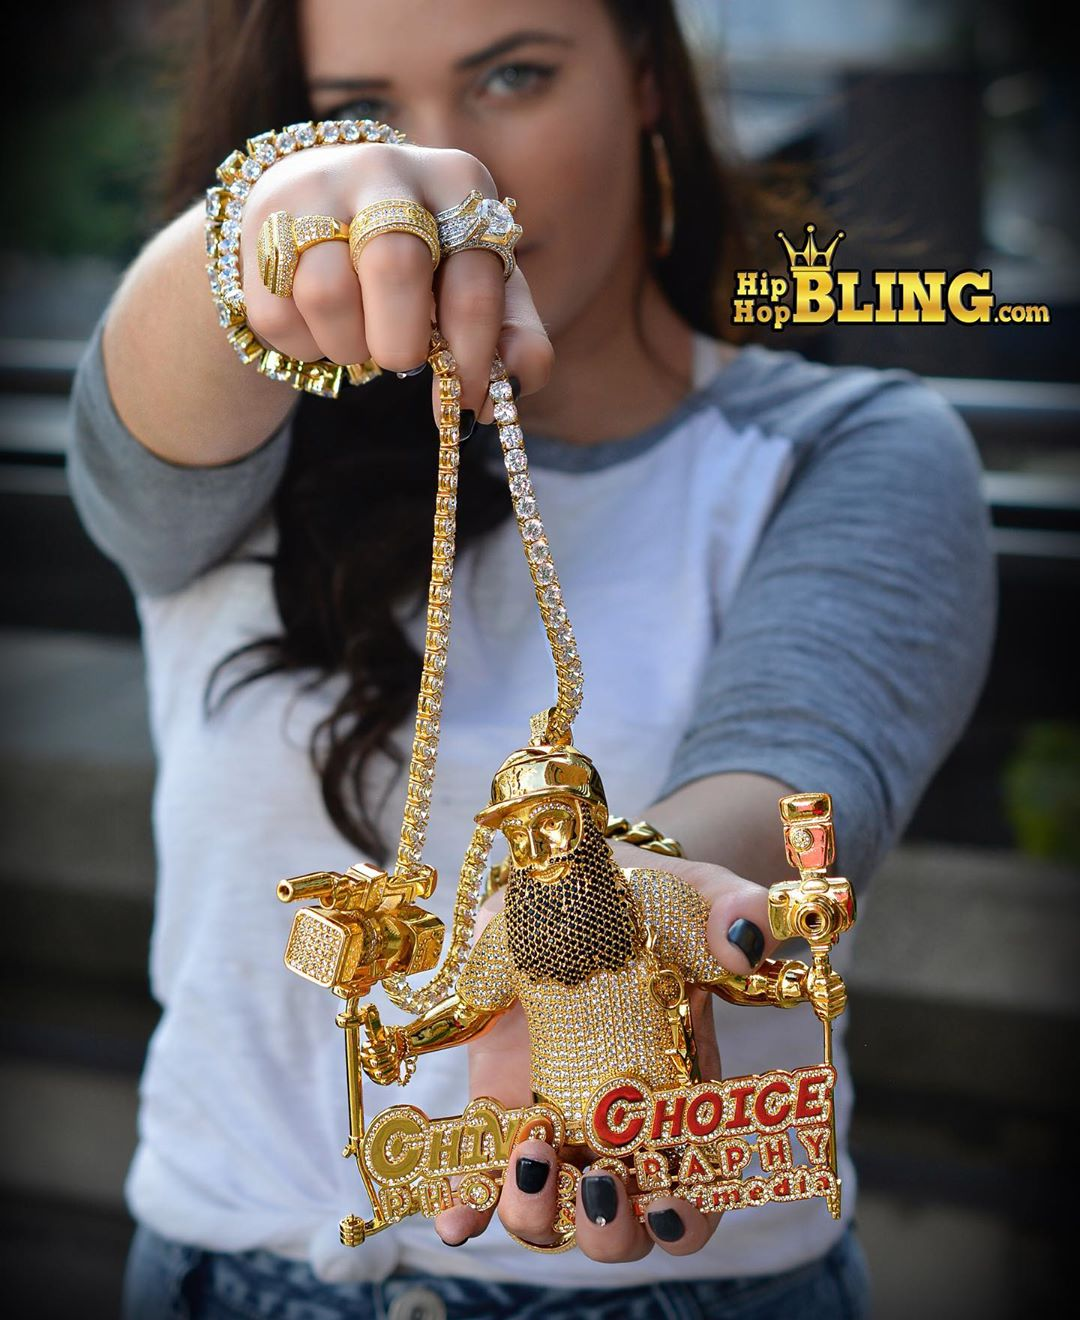 Custom work with ALL metals, get in touch with us at Hip Hop Bling this holiday season